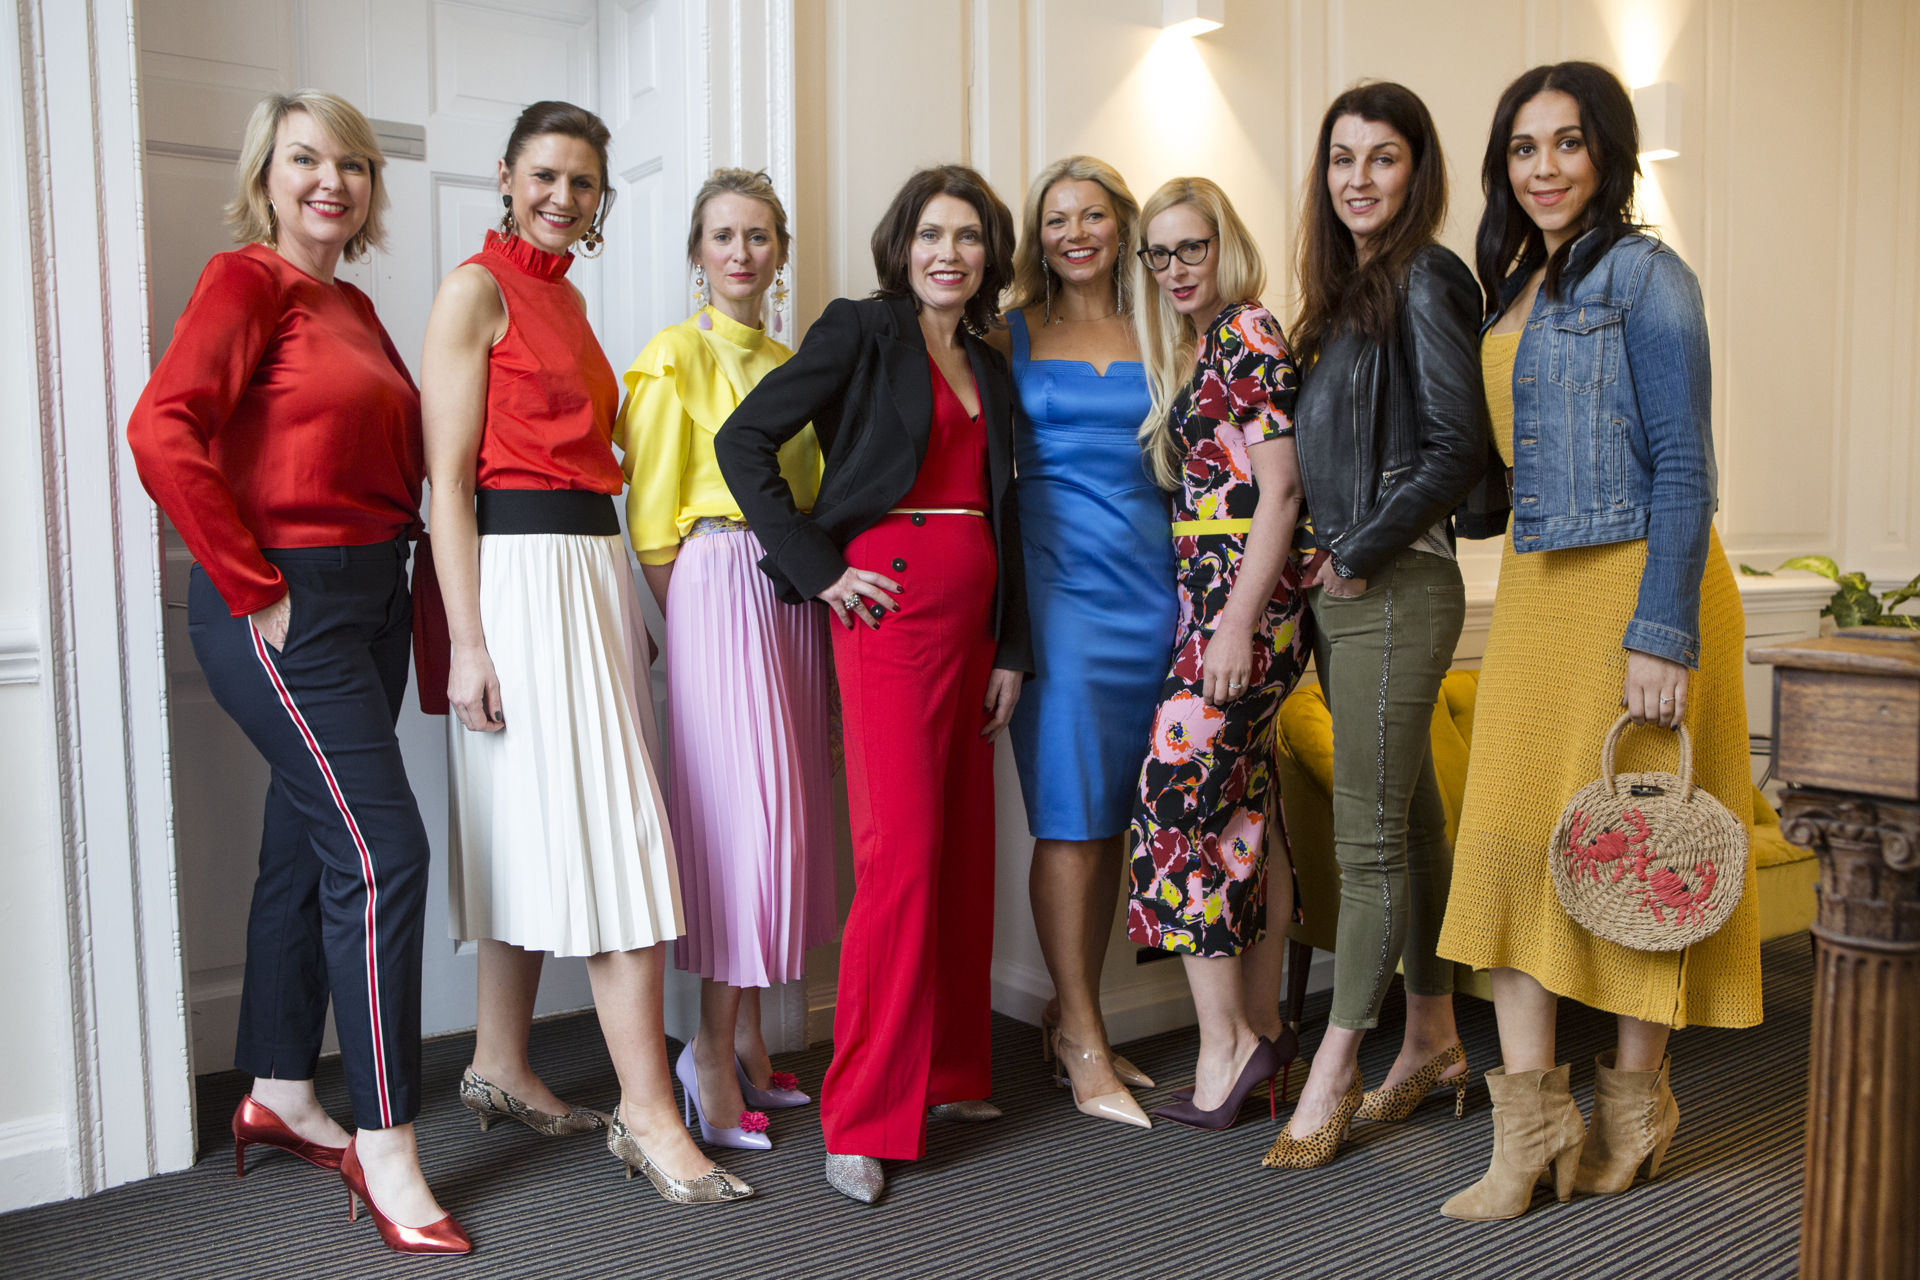 Personal Stylist Course at NHJ Style Academy